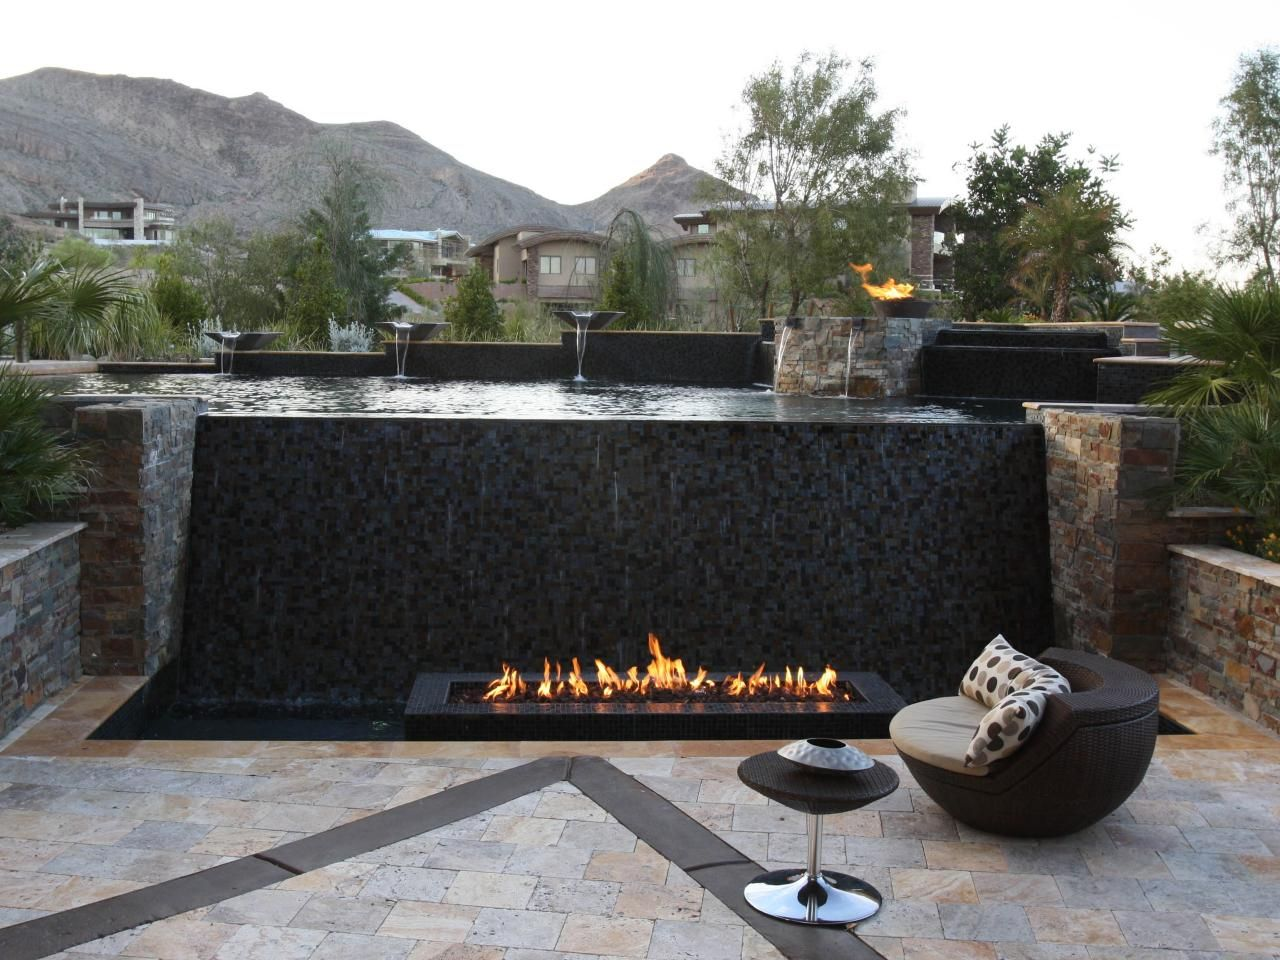 Dramatic Infinity Pool With Waterfall And Fire Features Pool Waterfall Fire Features Pool Designs